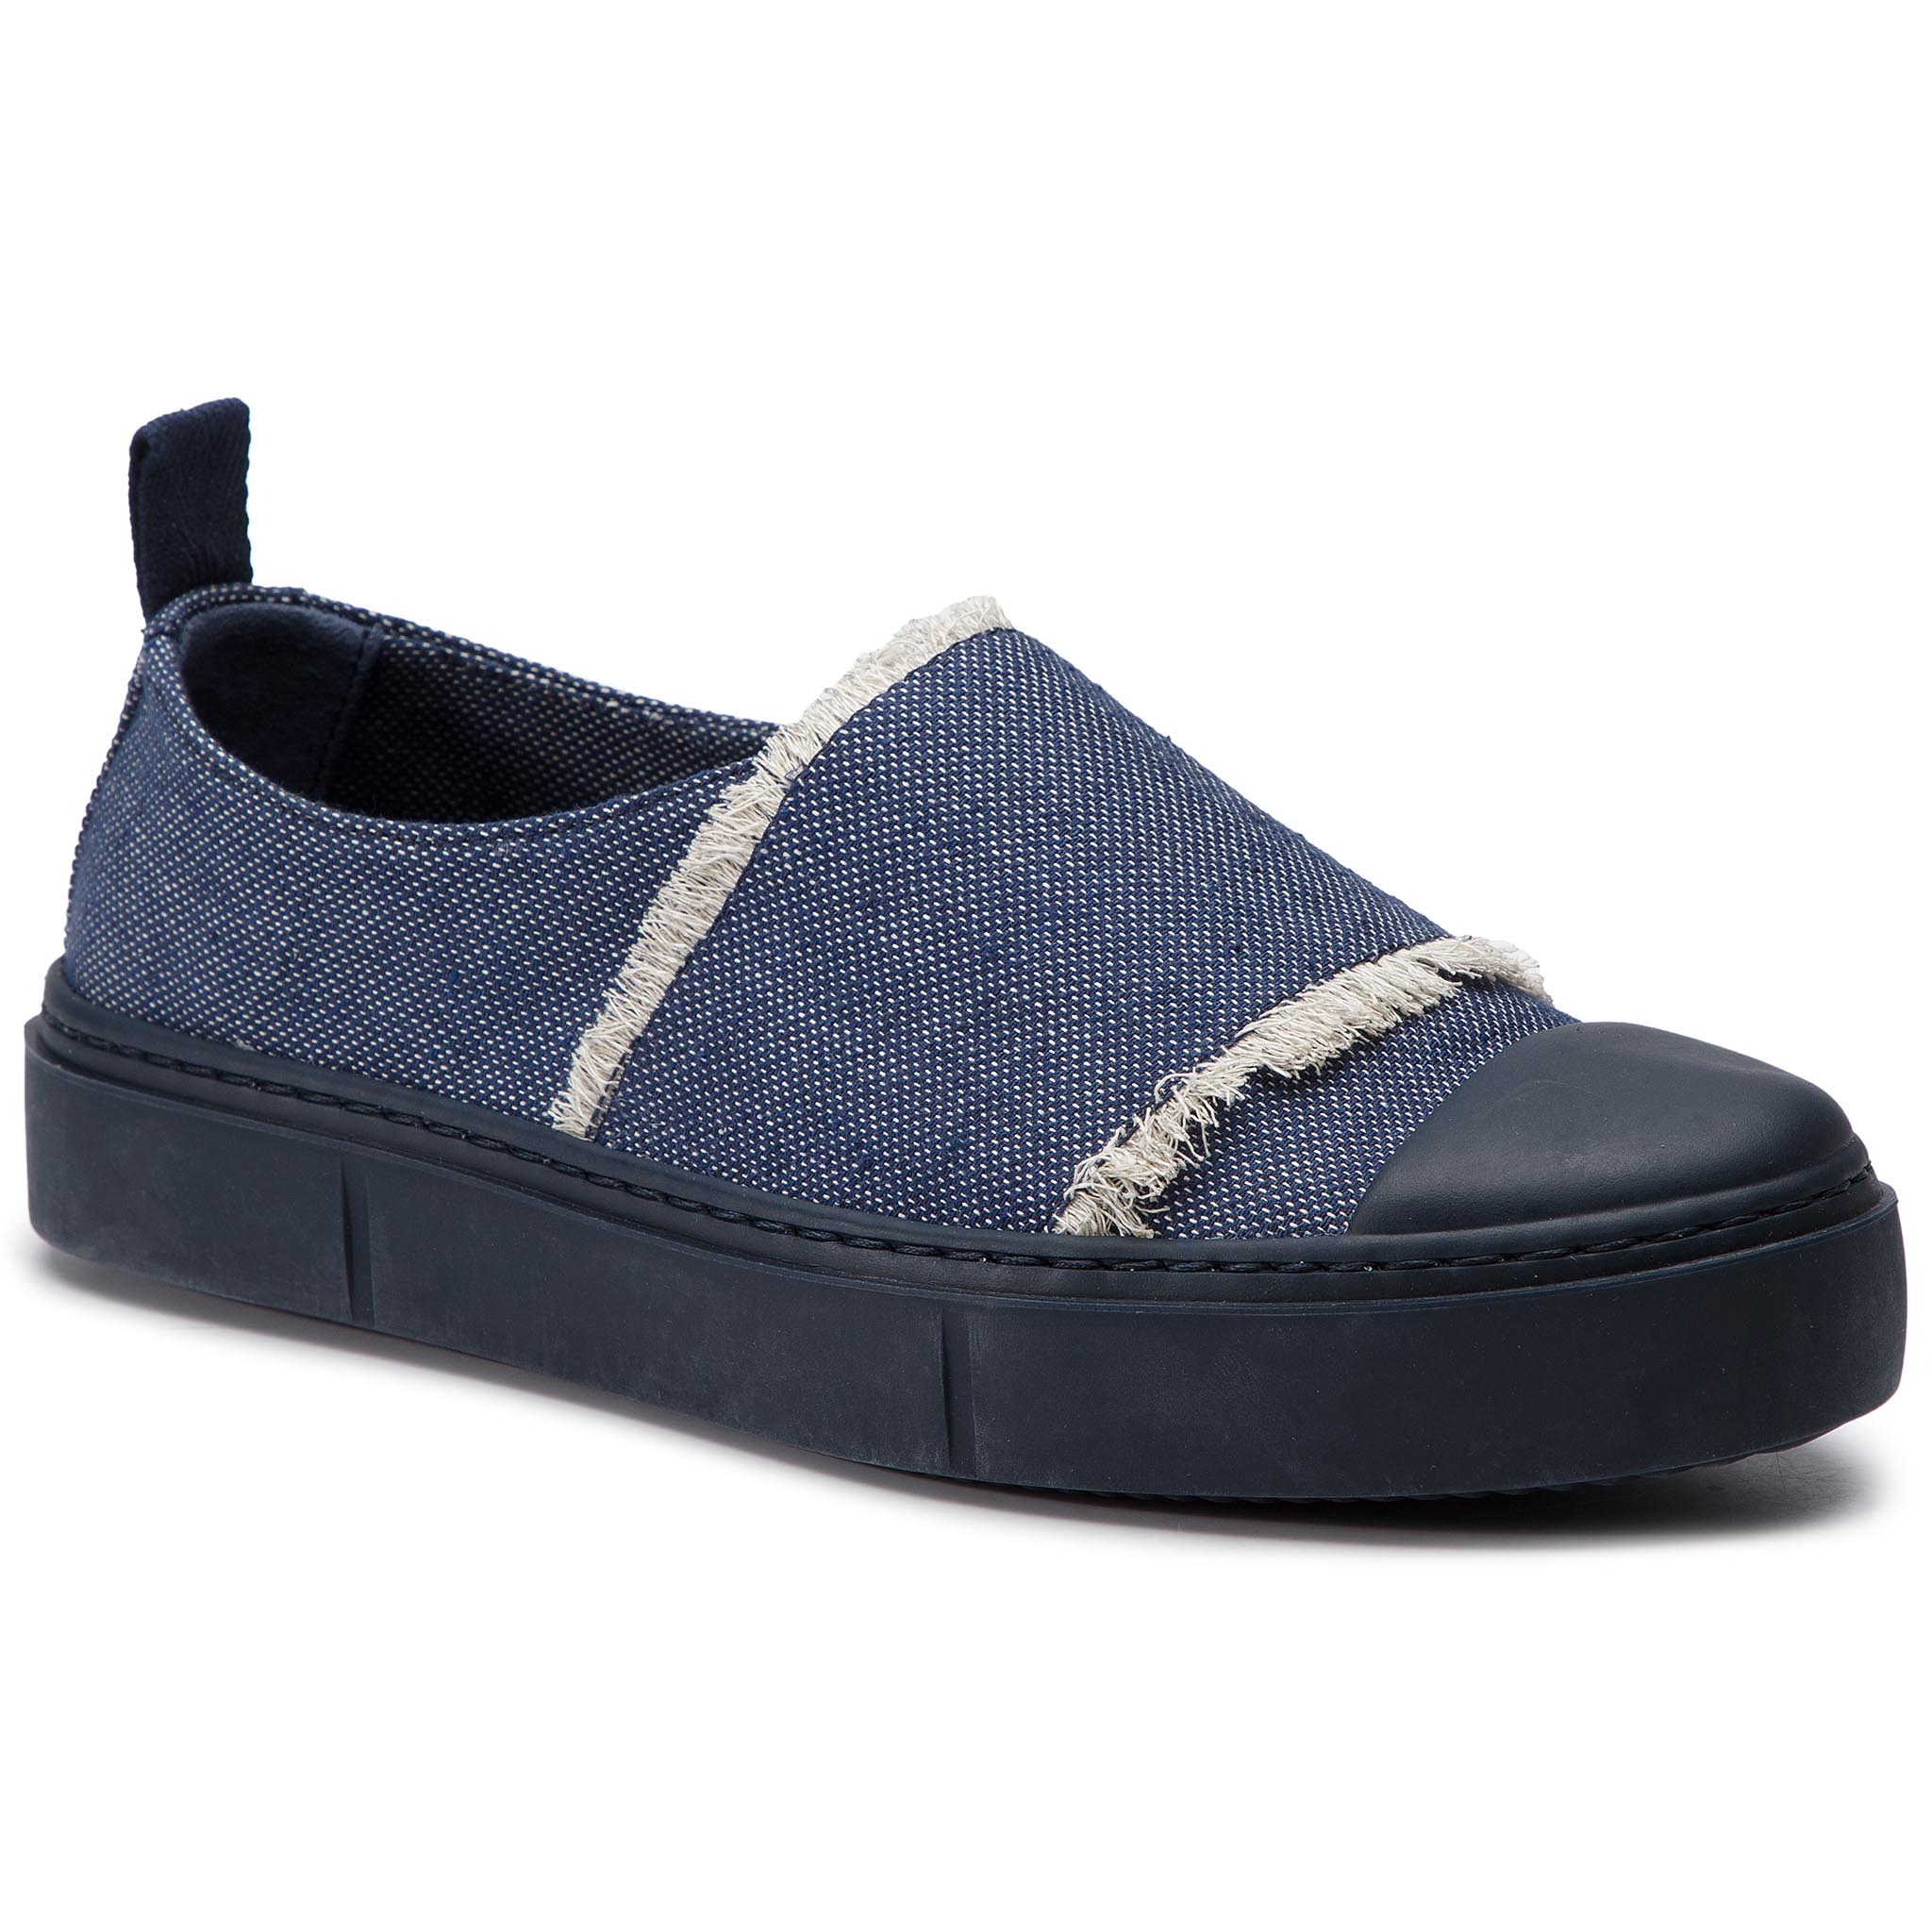 Sneakers WEEKEND MAXMARA - Epopea 576101926 Navy 003